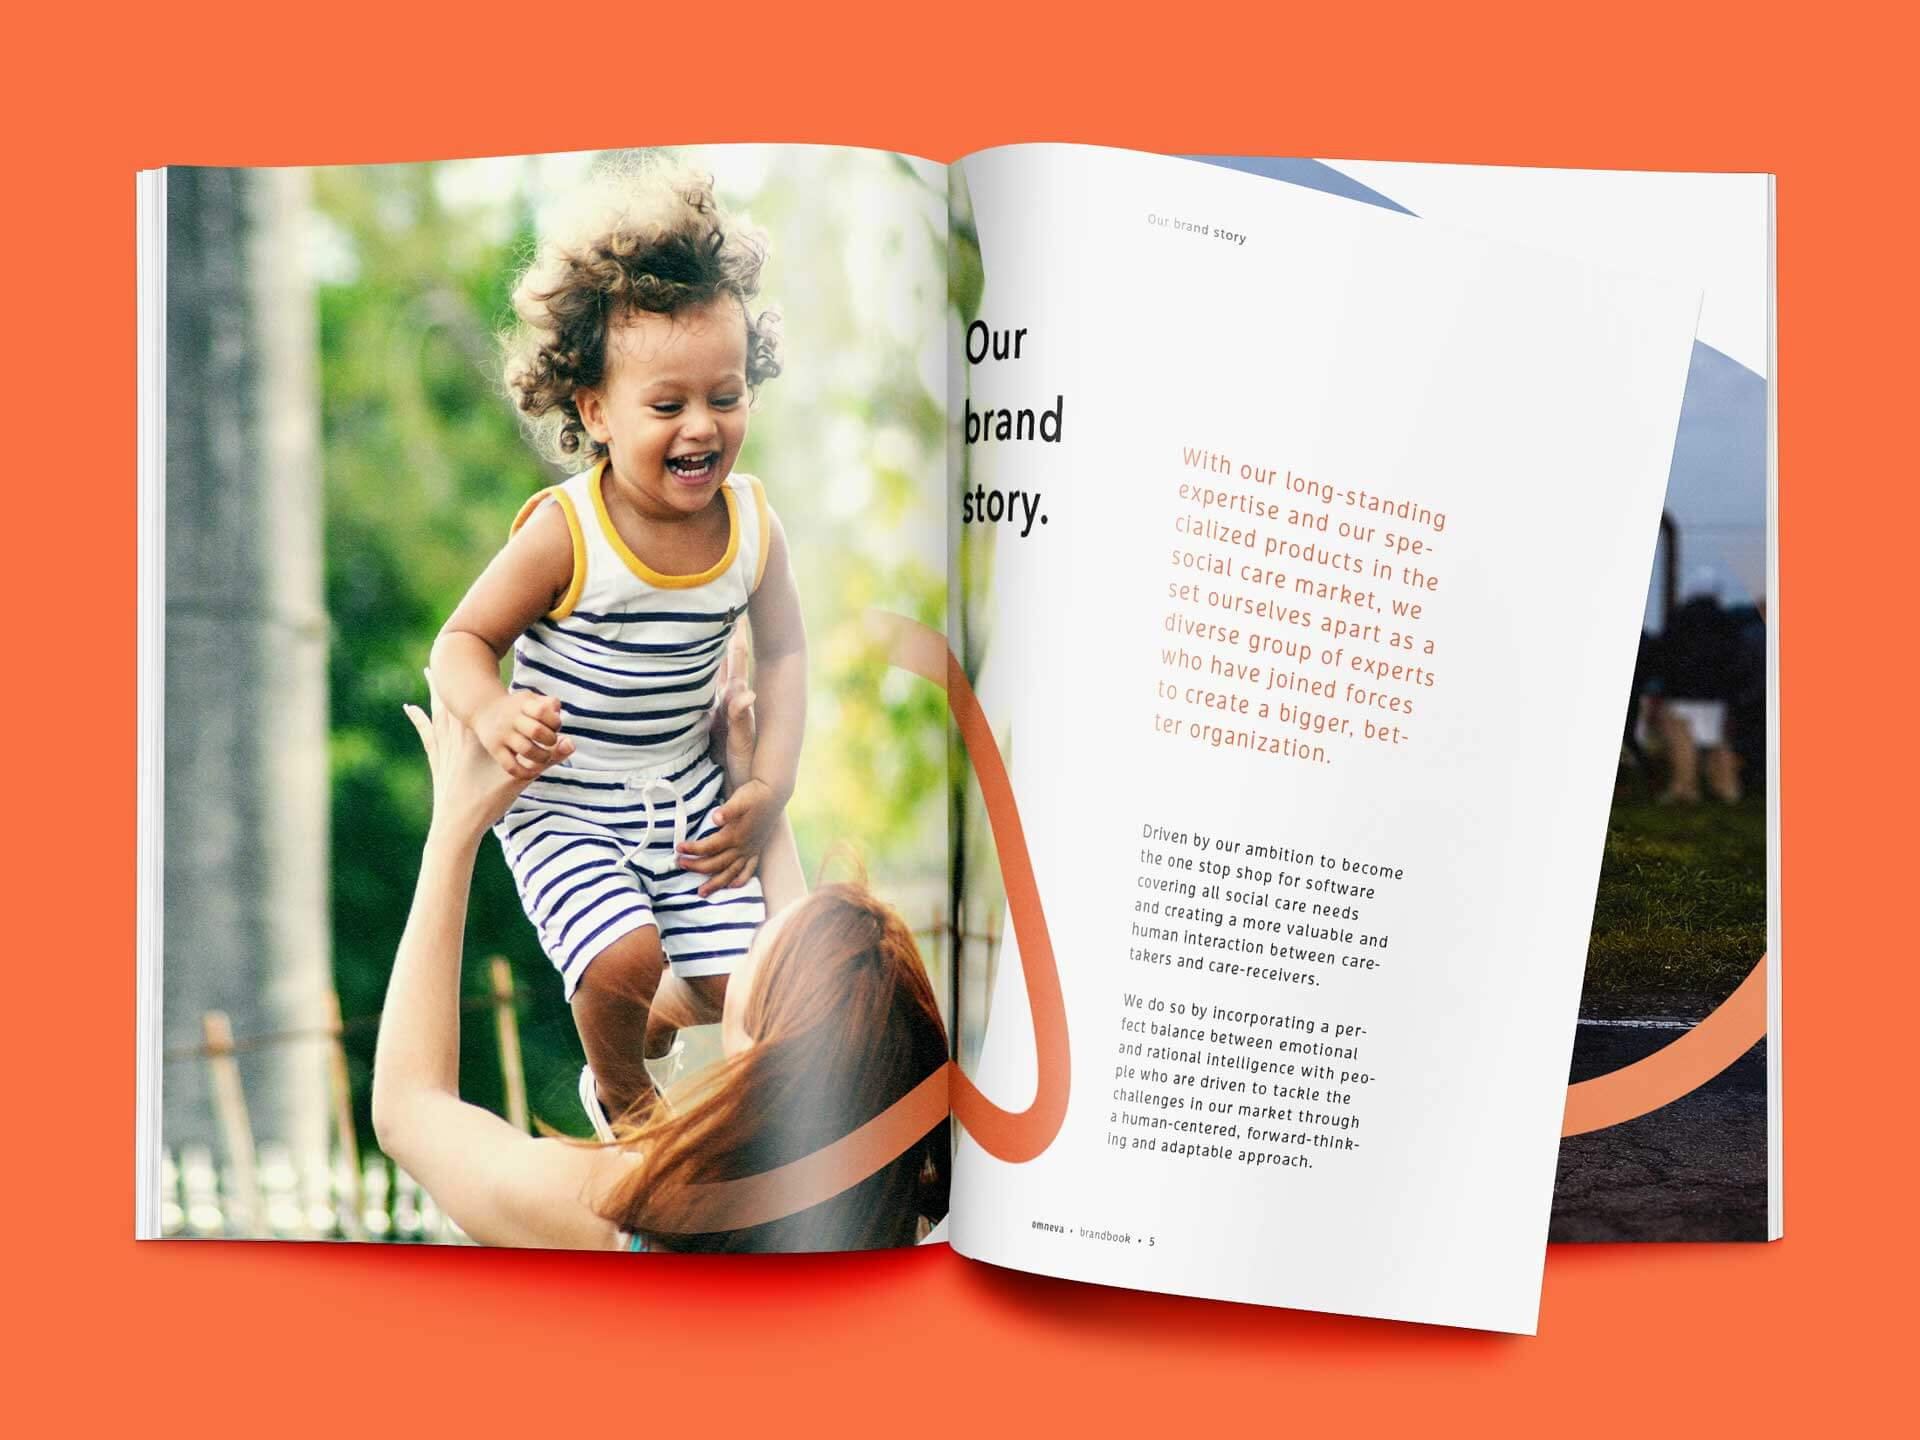 Spread with the Brand Story in the Brandbook for Omneva.